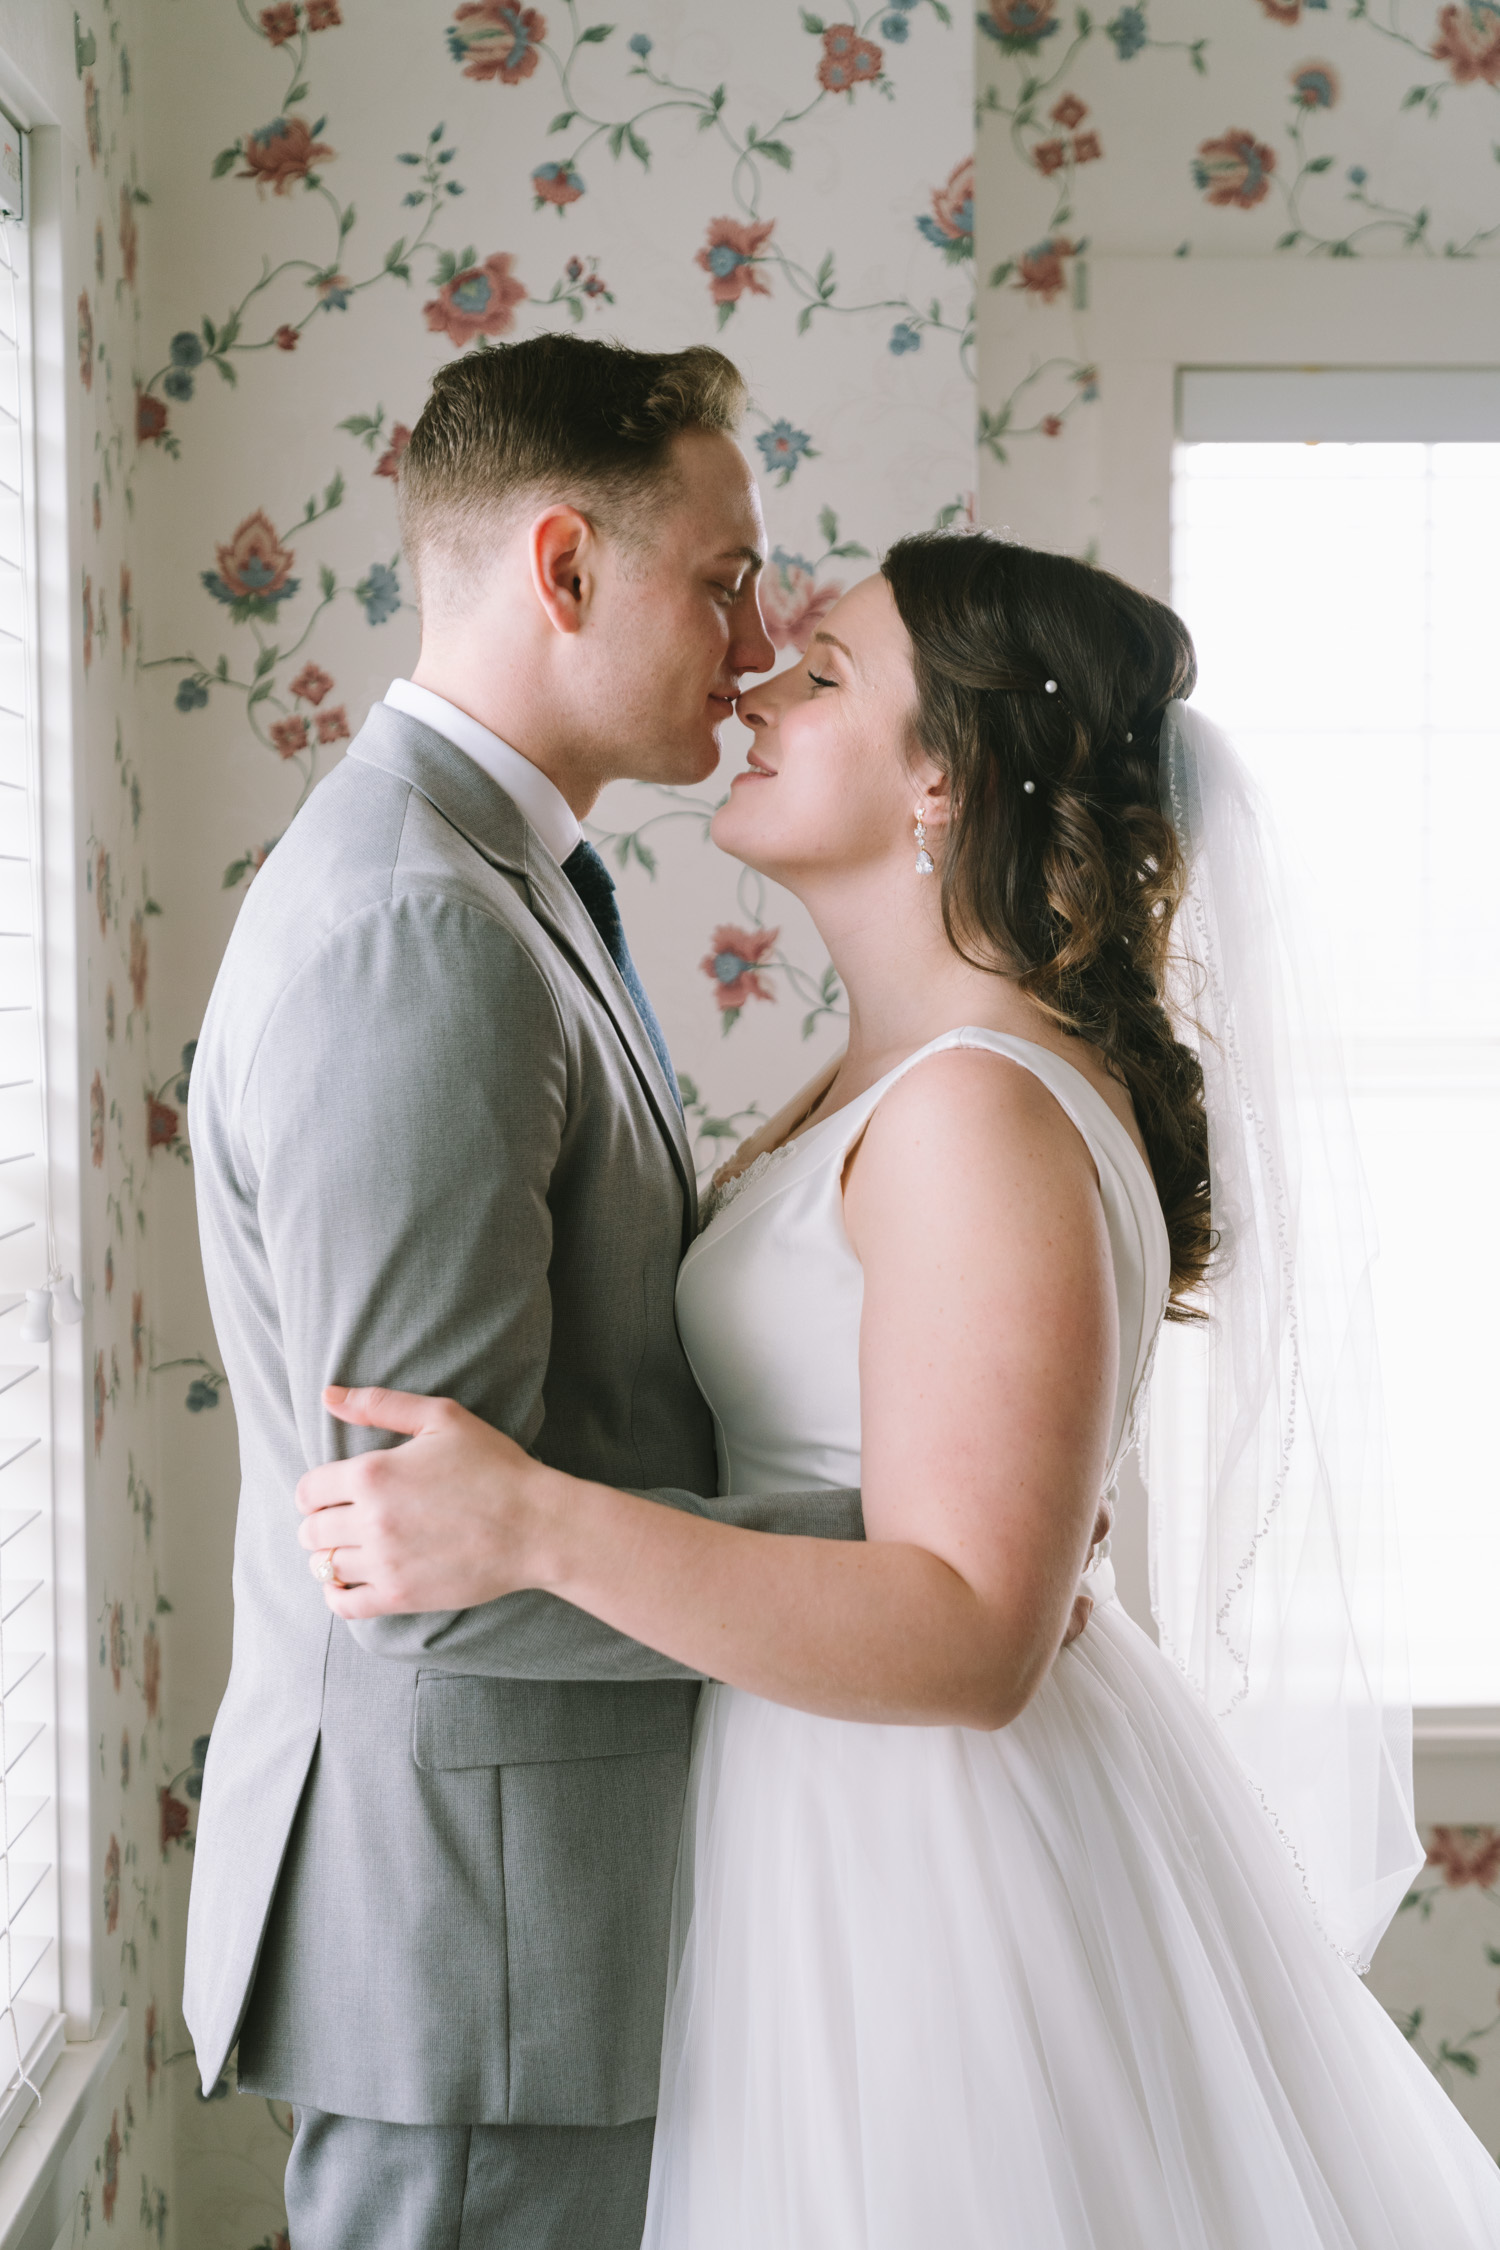 wedding photography - bride and groom photos